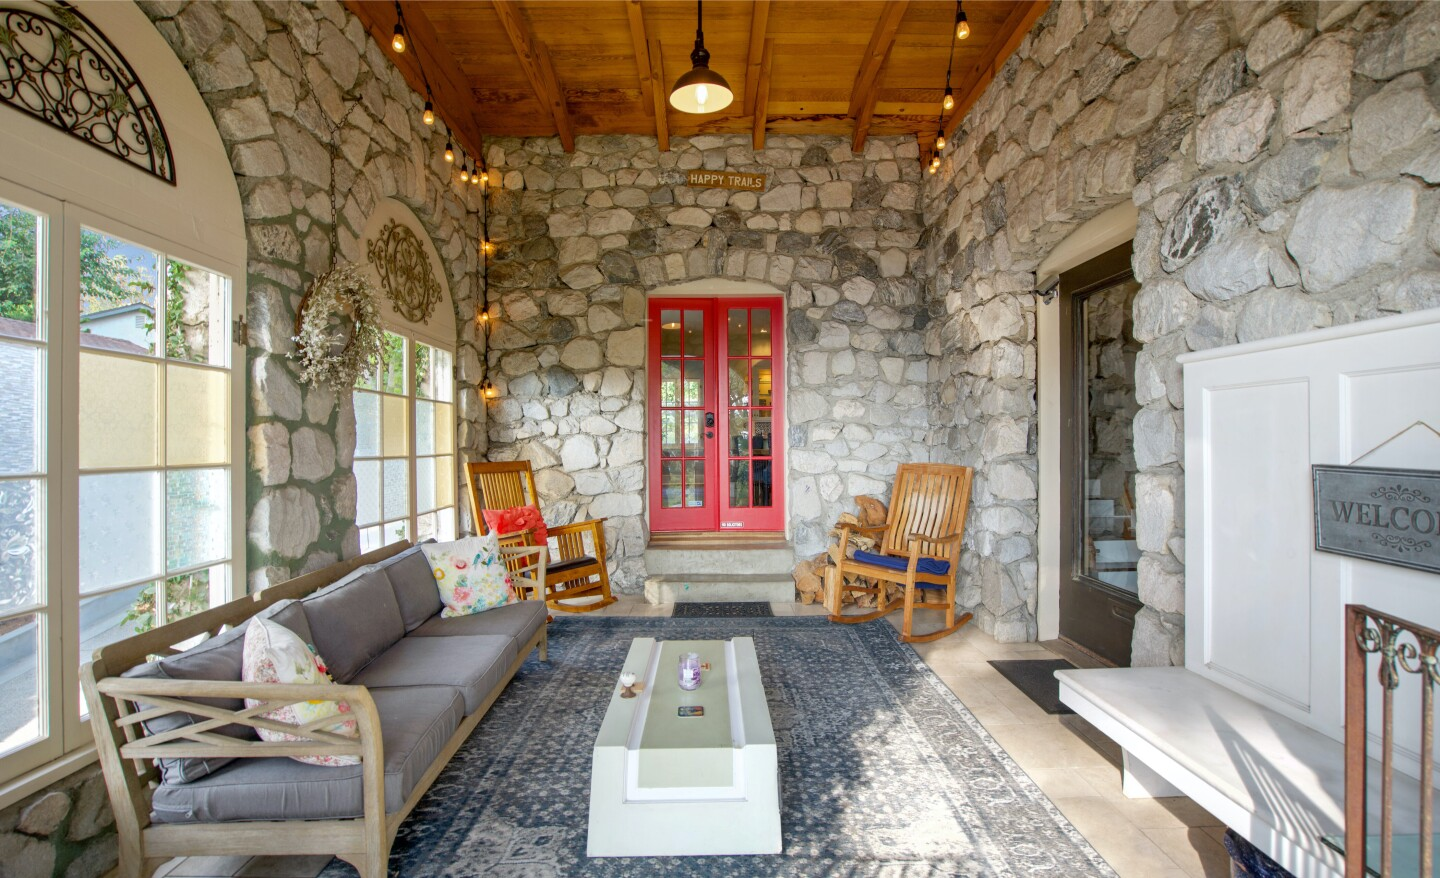 Built in 1936 from locally quarried stone, the charming stone-clad home holds four bedrooms and five bathrooms in 2,800 square feet.